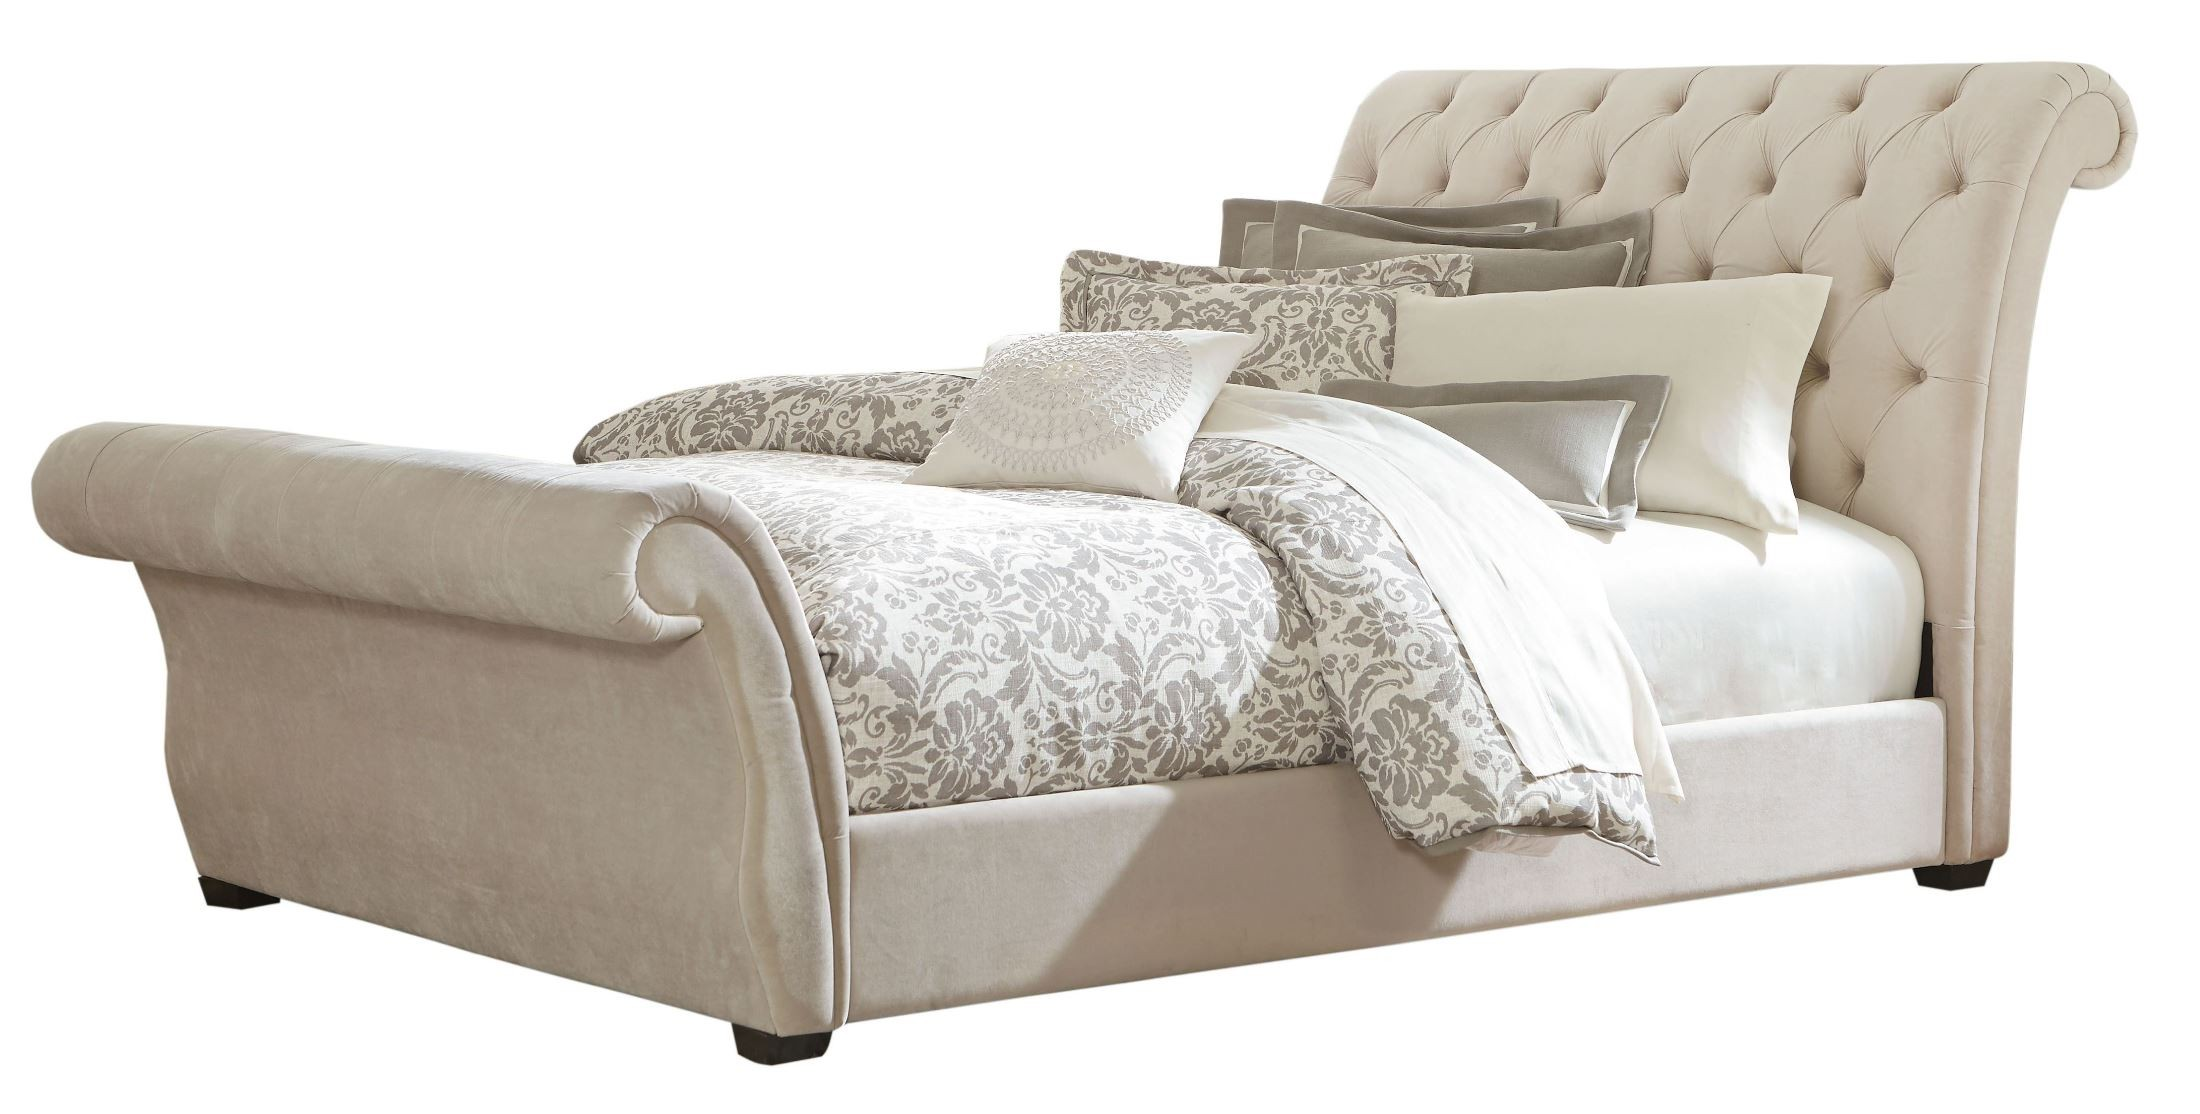 Waverly taupe king upholstered bed 94513 14 standard for Furniture 94513